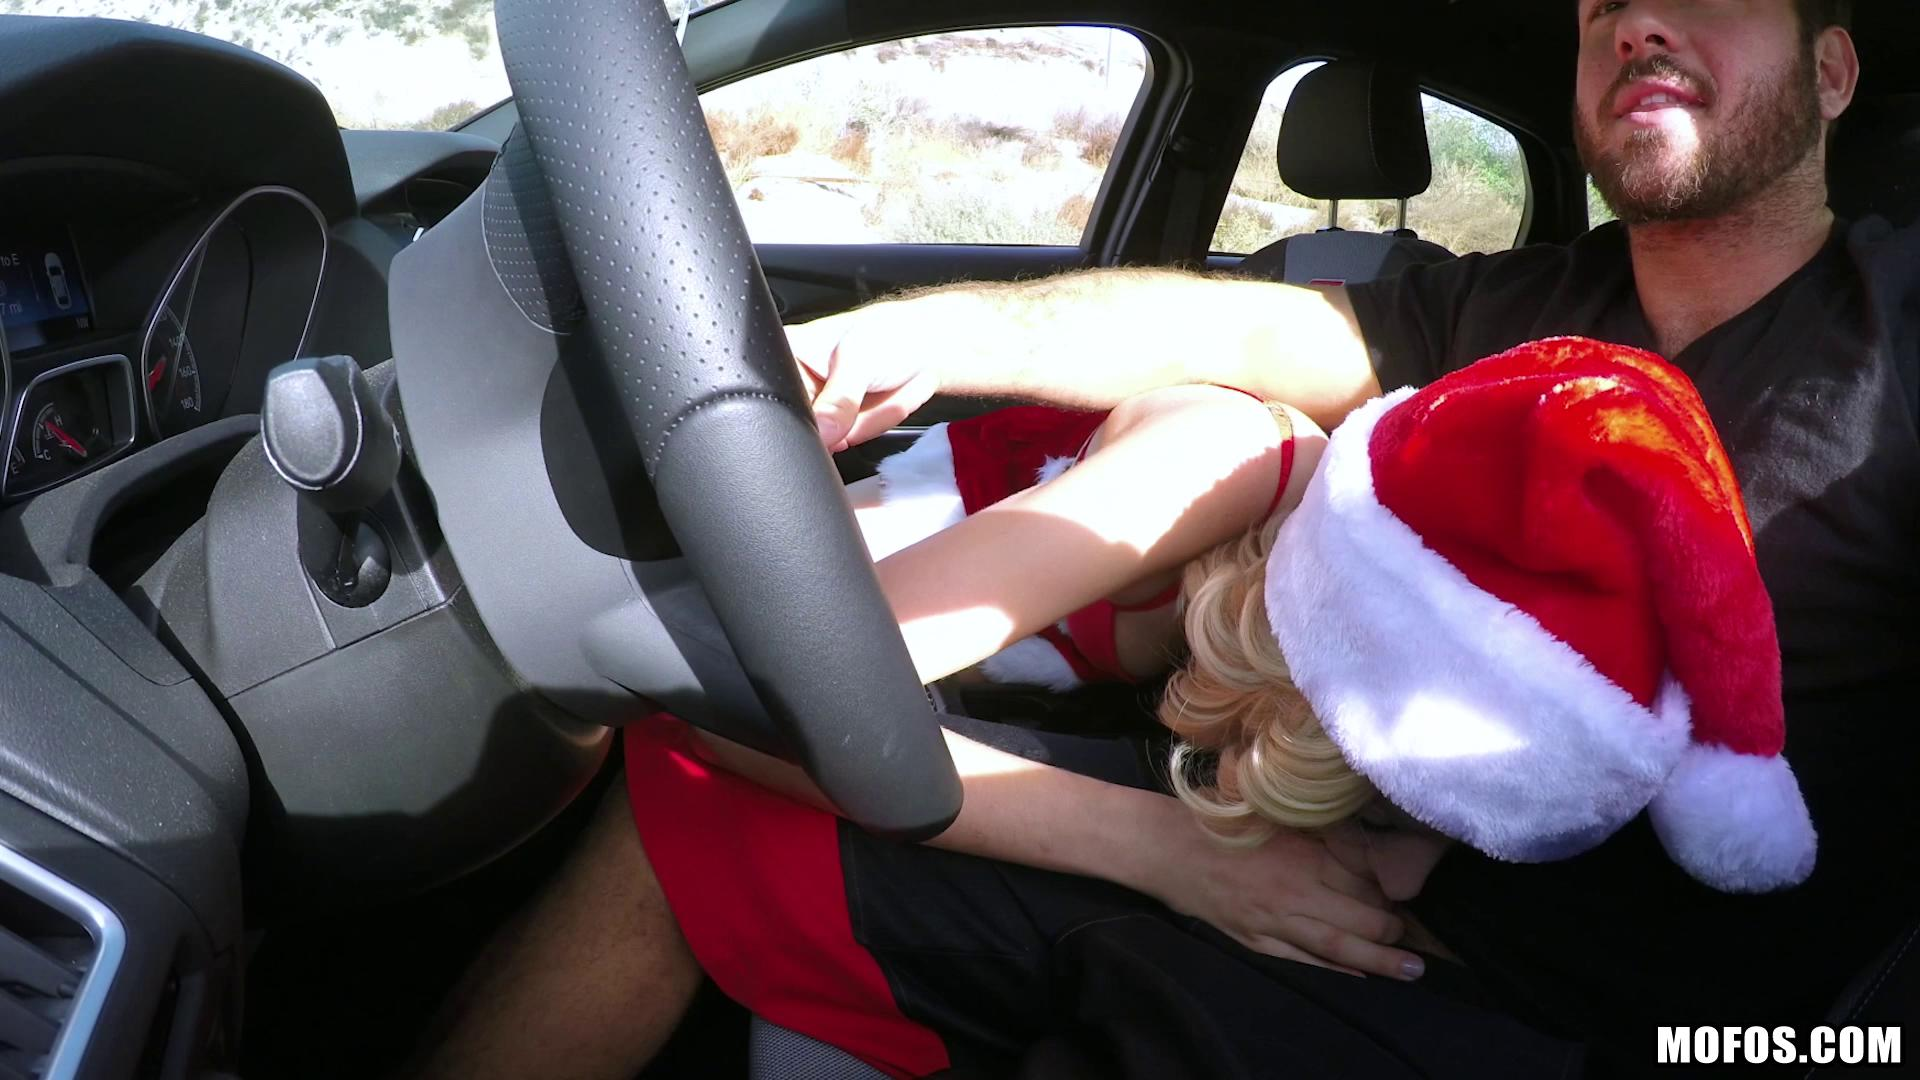 StrandedTeens – Haley Reed Haley The Horny Christmas Hitchhiker